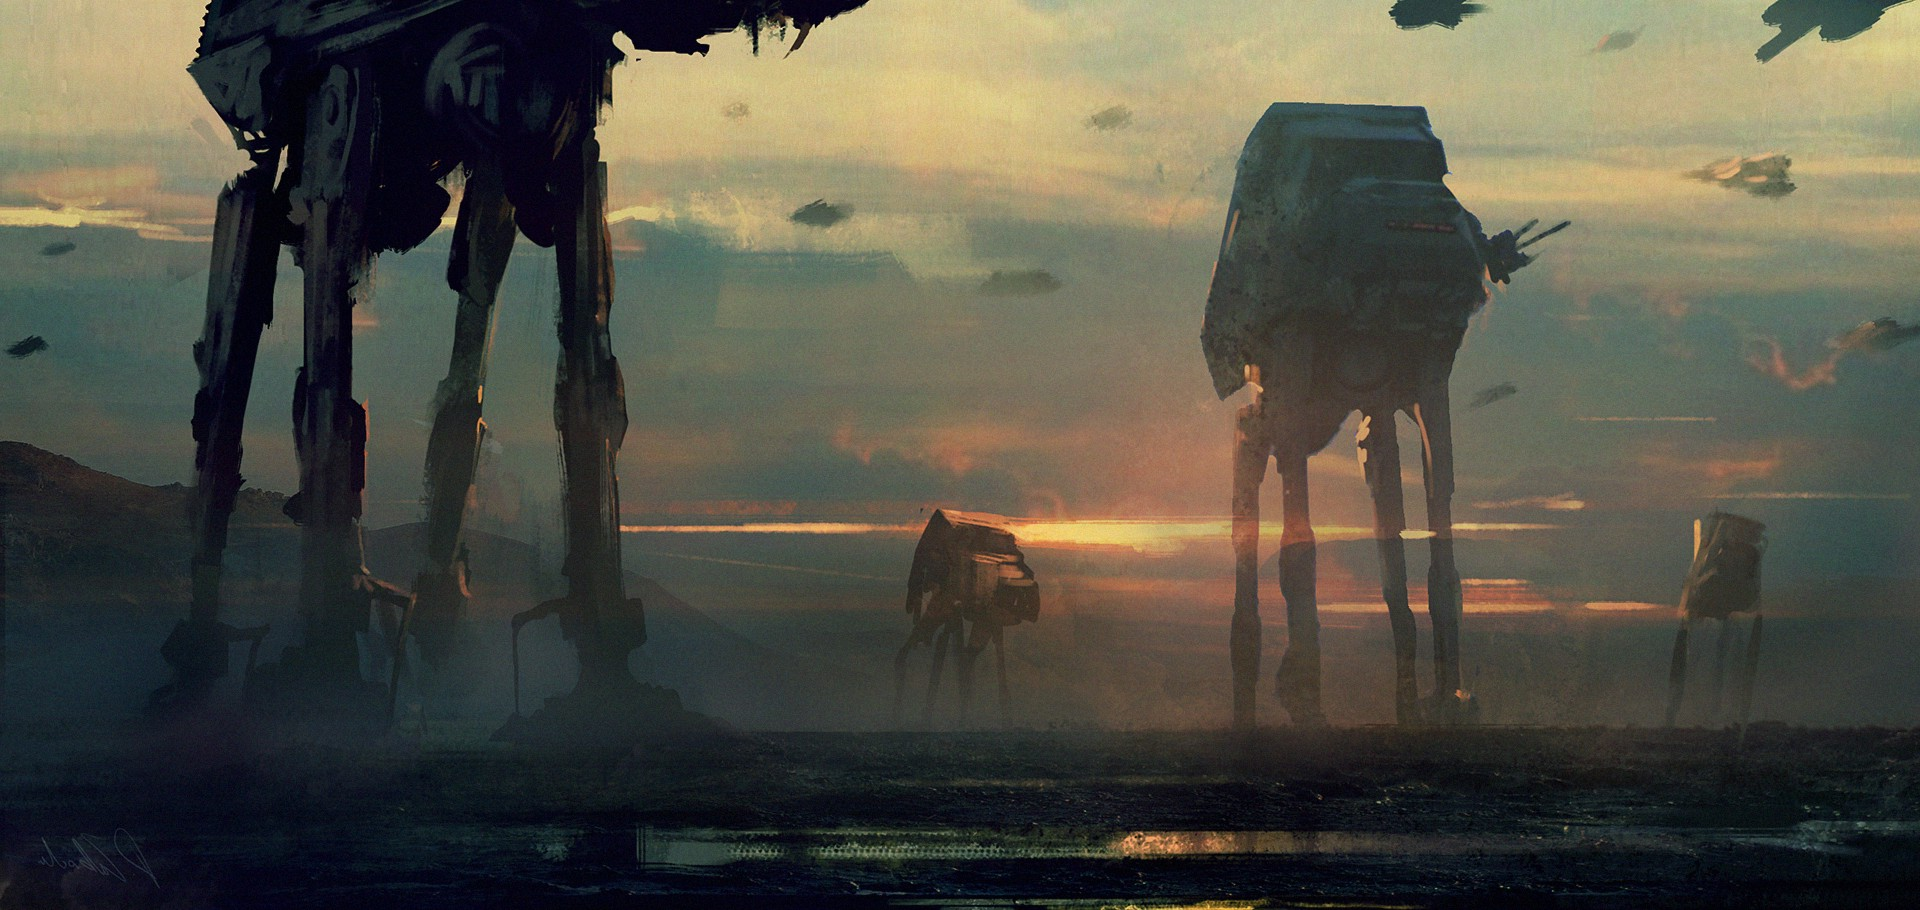 Star Wars Art Wallpaper